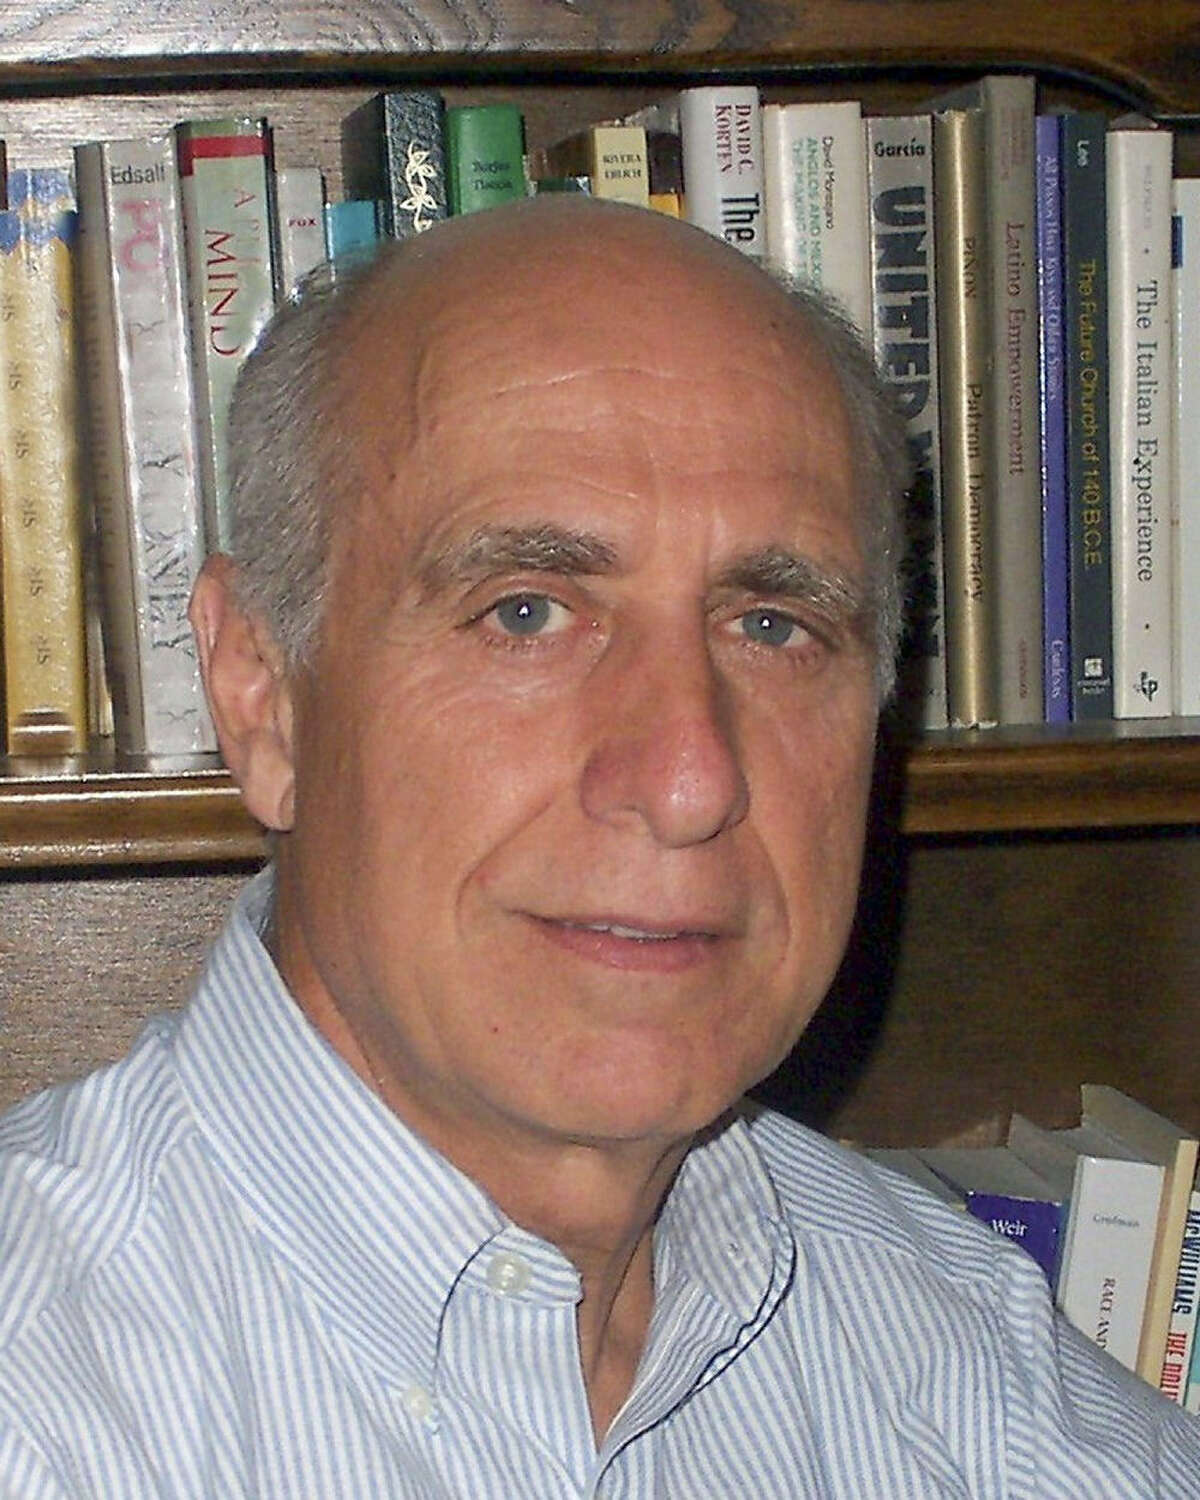 Robert Brischetto is a research consultant and president of Social Research Services Inc.